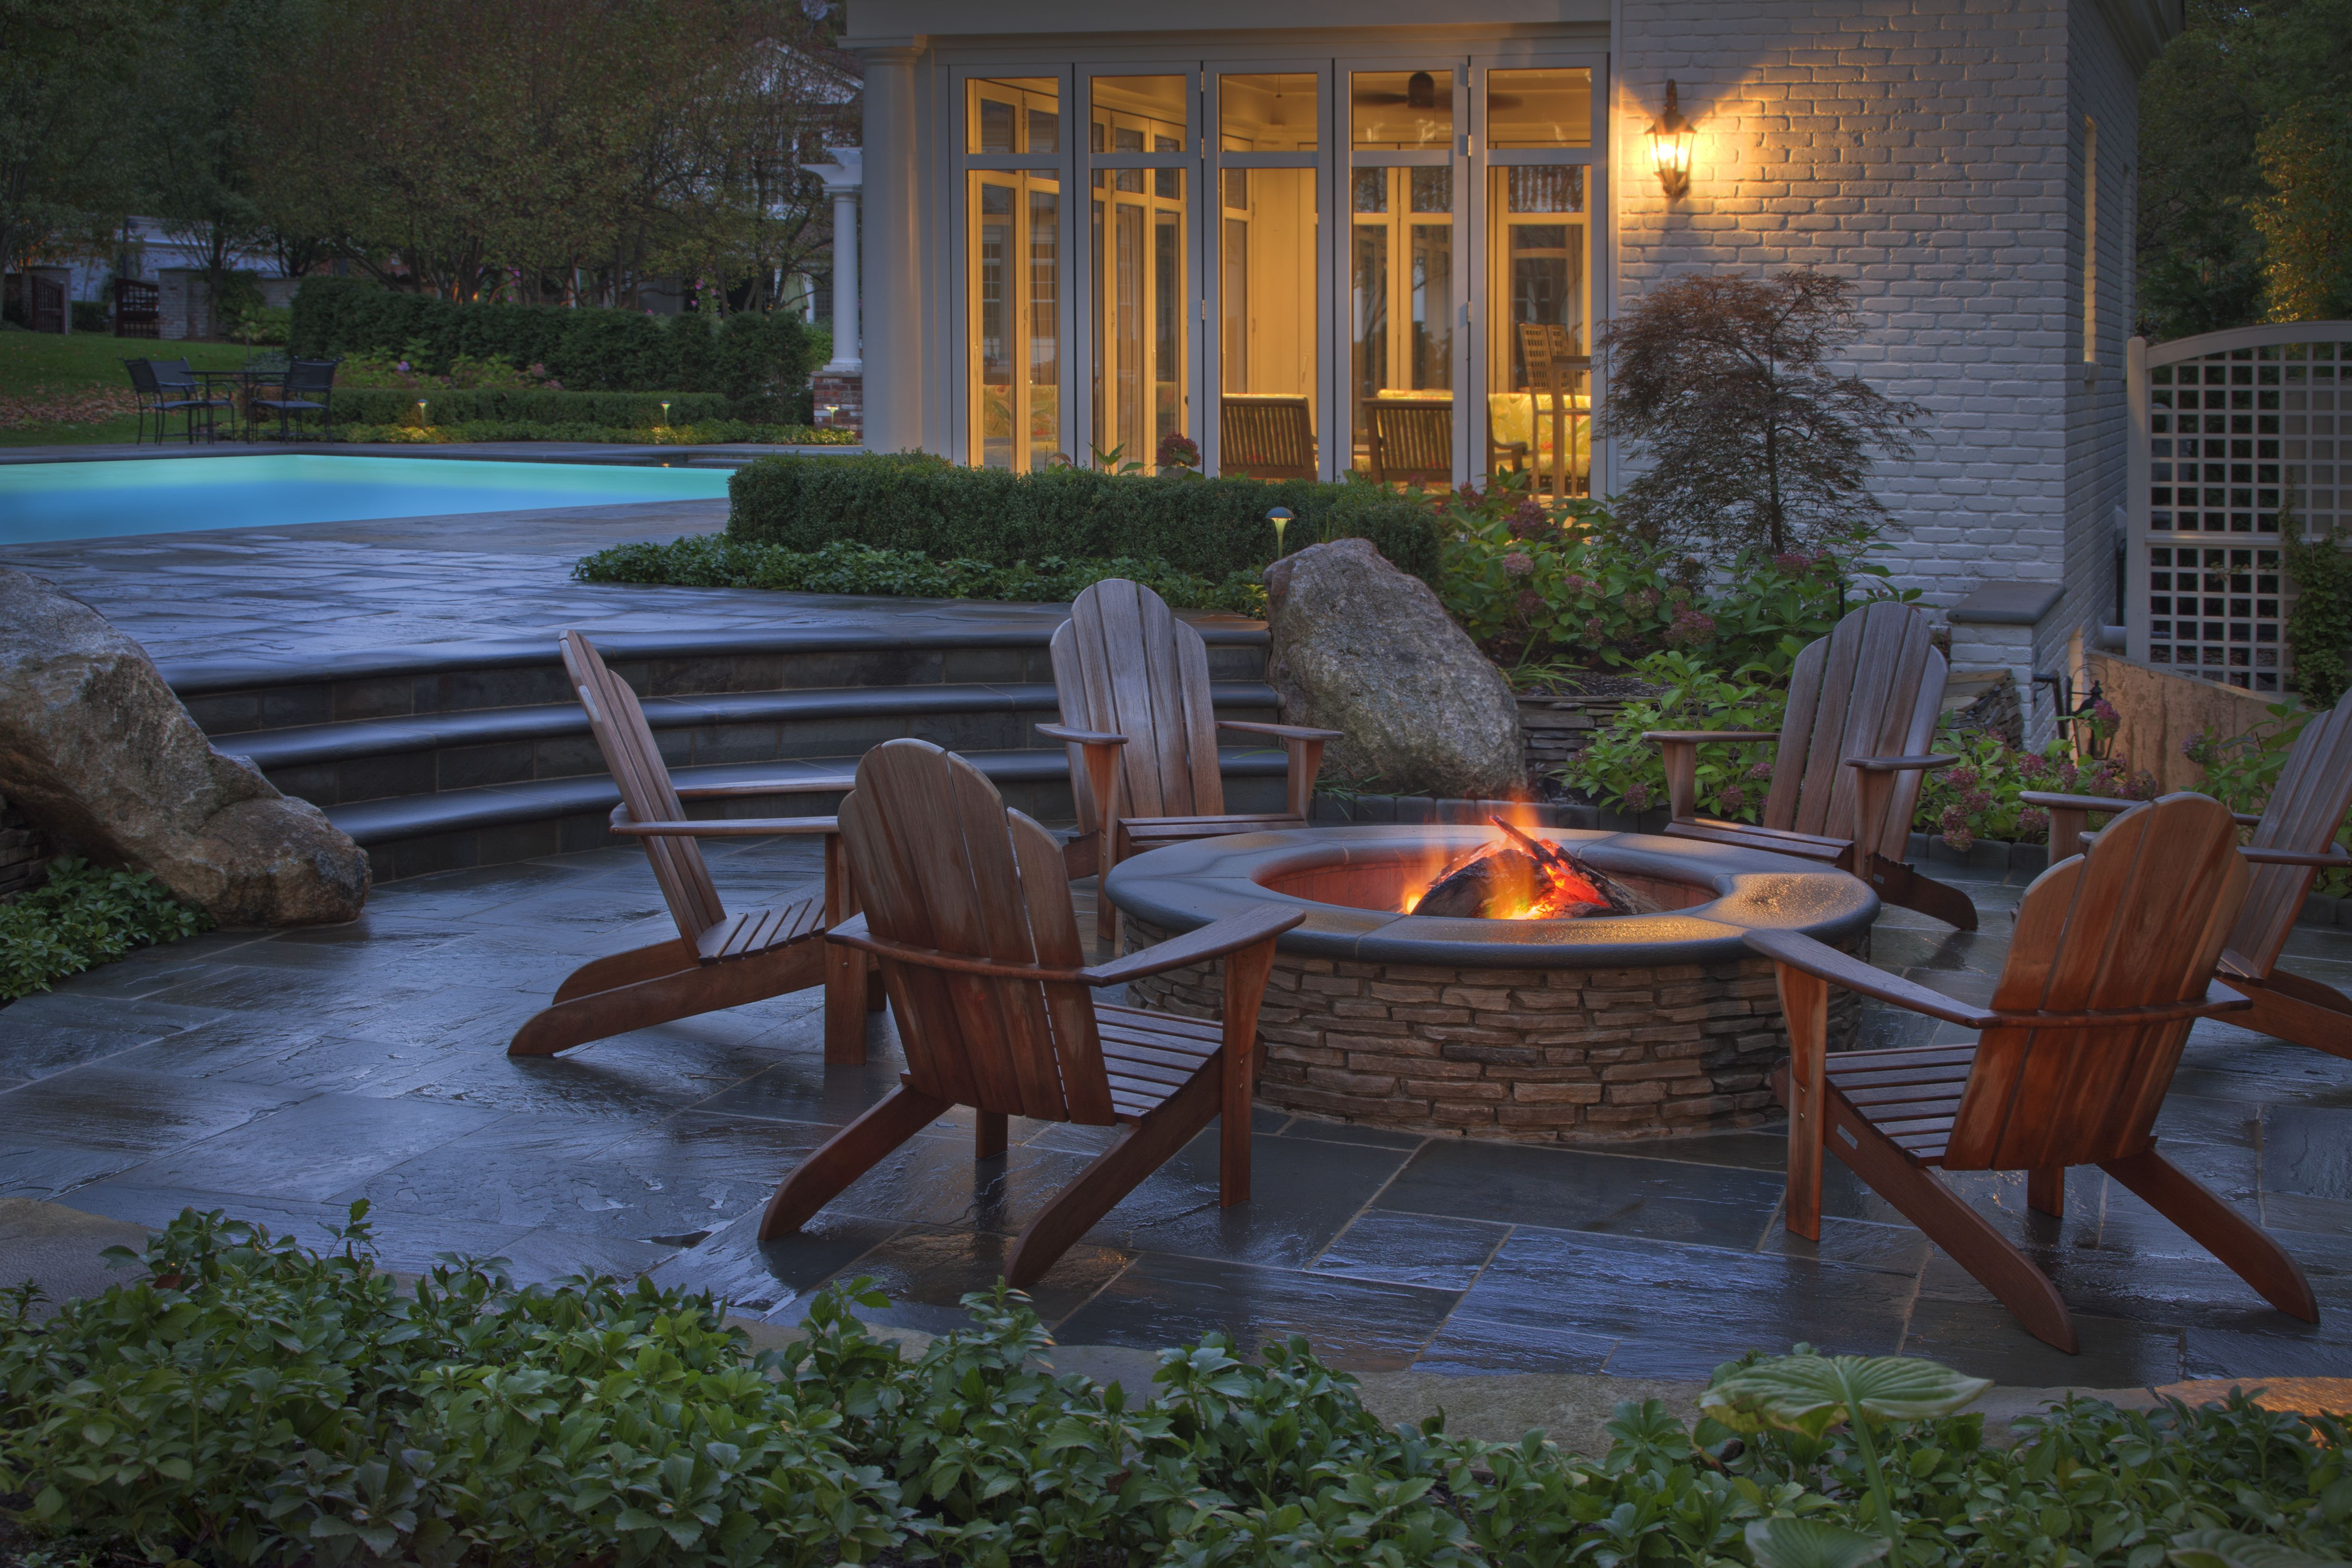 New backyard landscaping information offers design ideas for Outside landscape design